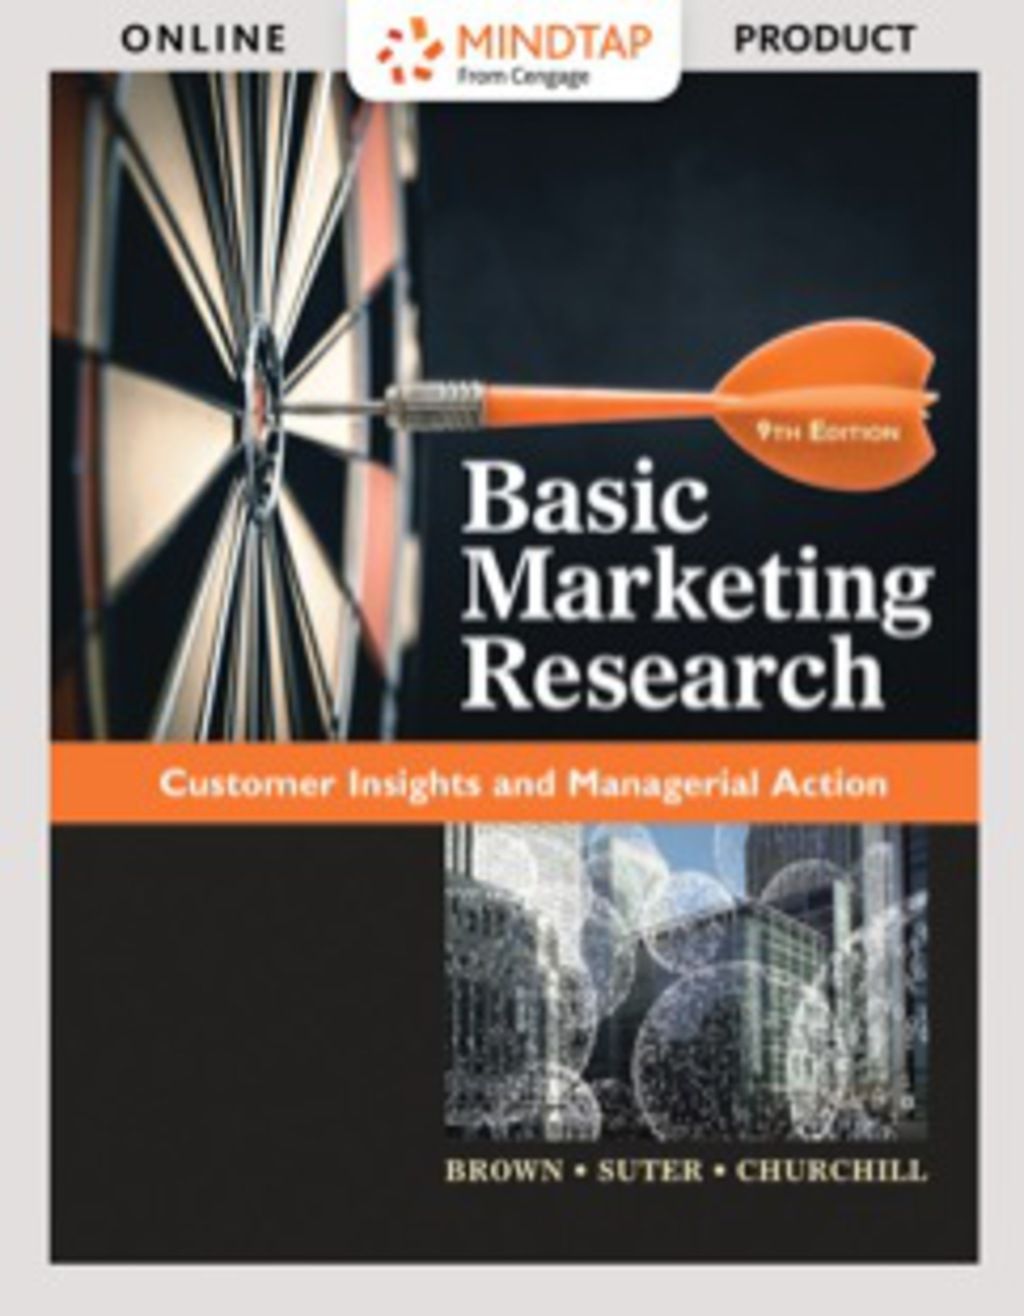 Amazon.com: Basic Marketing Research (Book Only) eBook ...